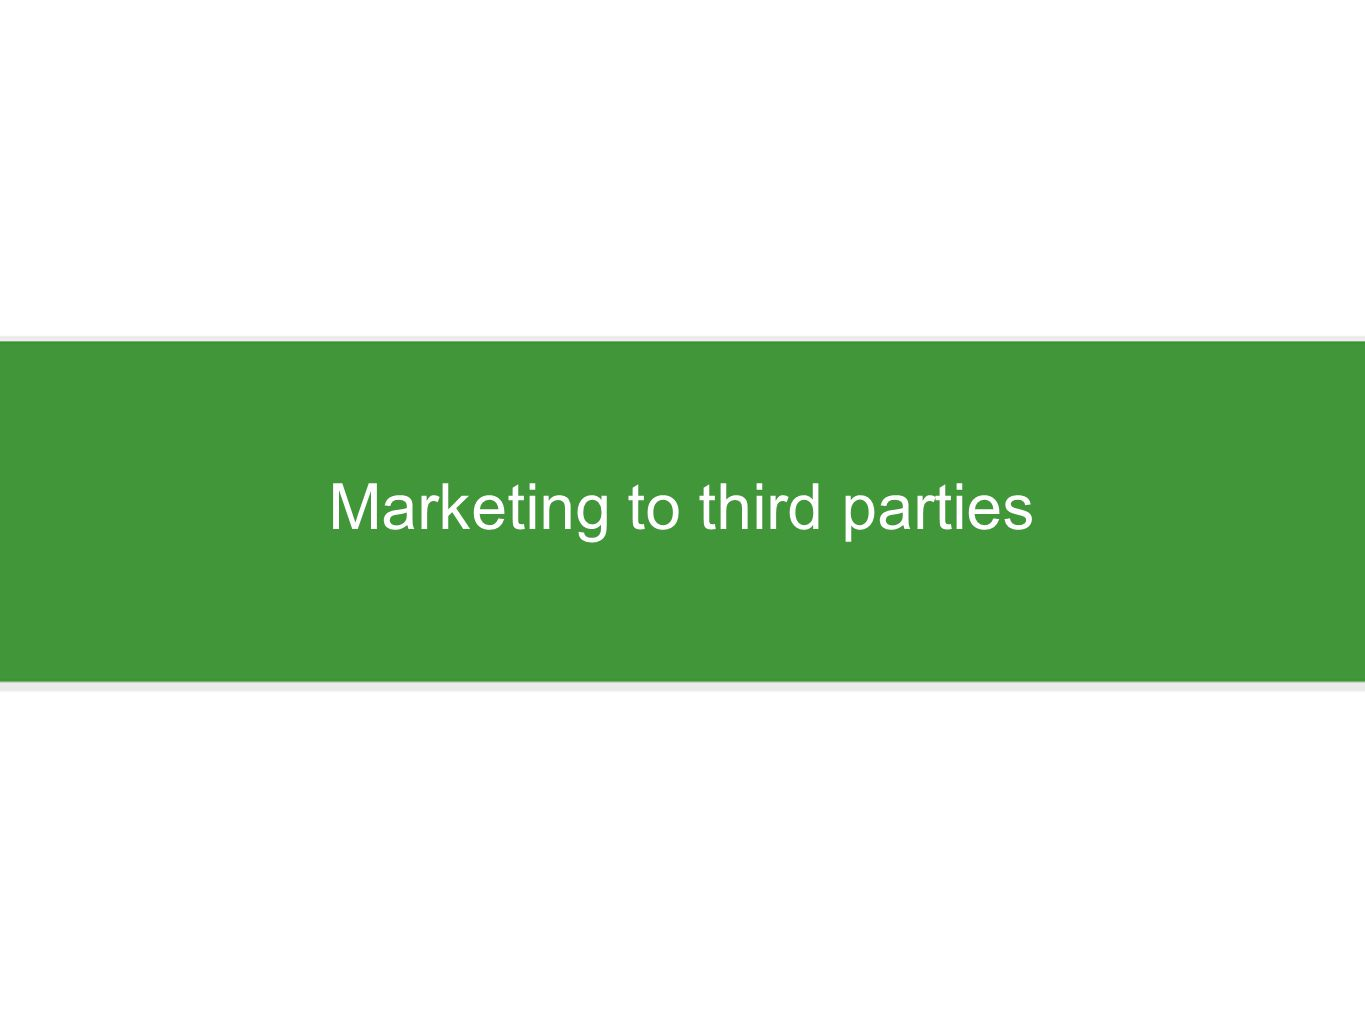 Marketing to third parties